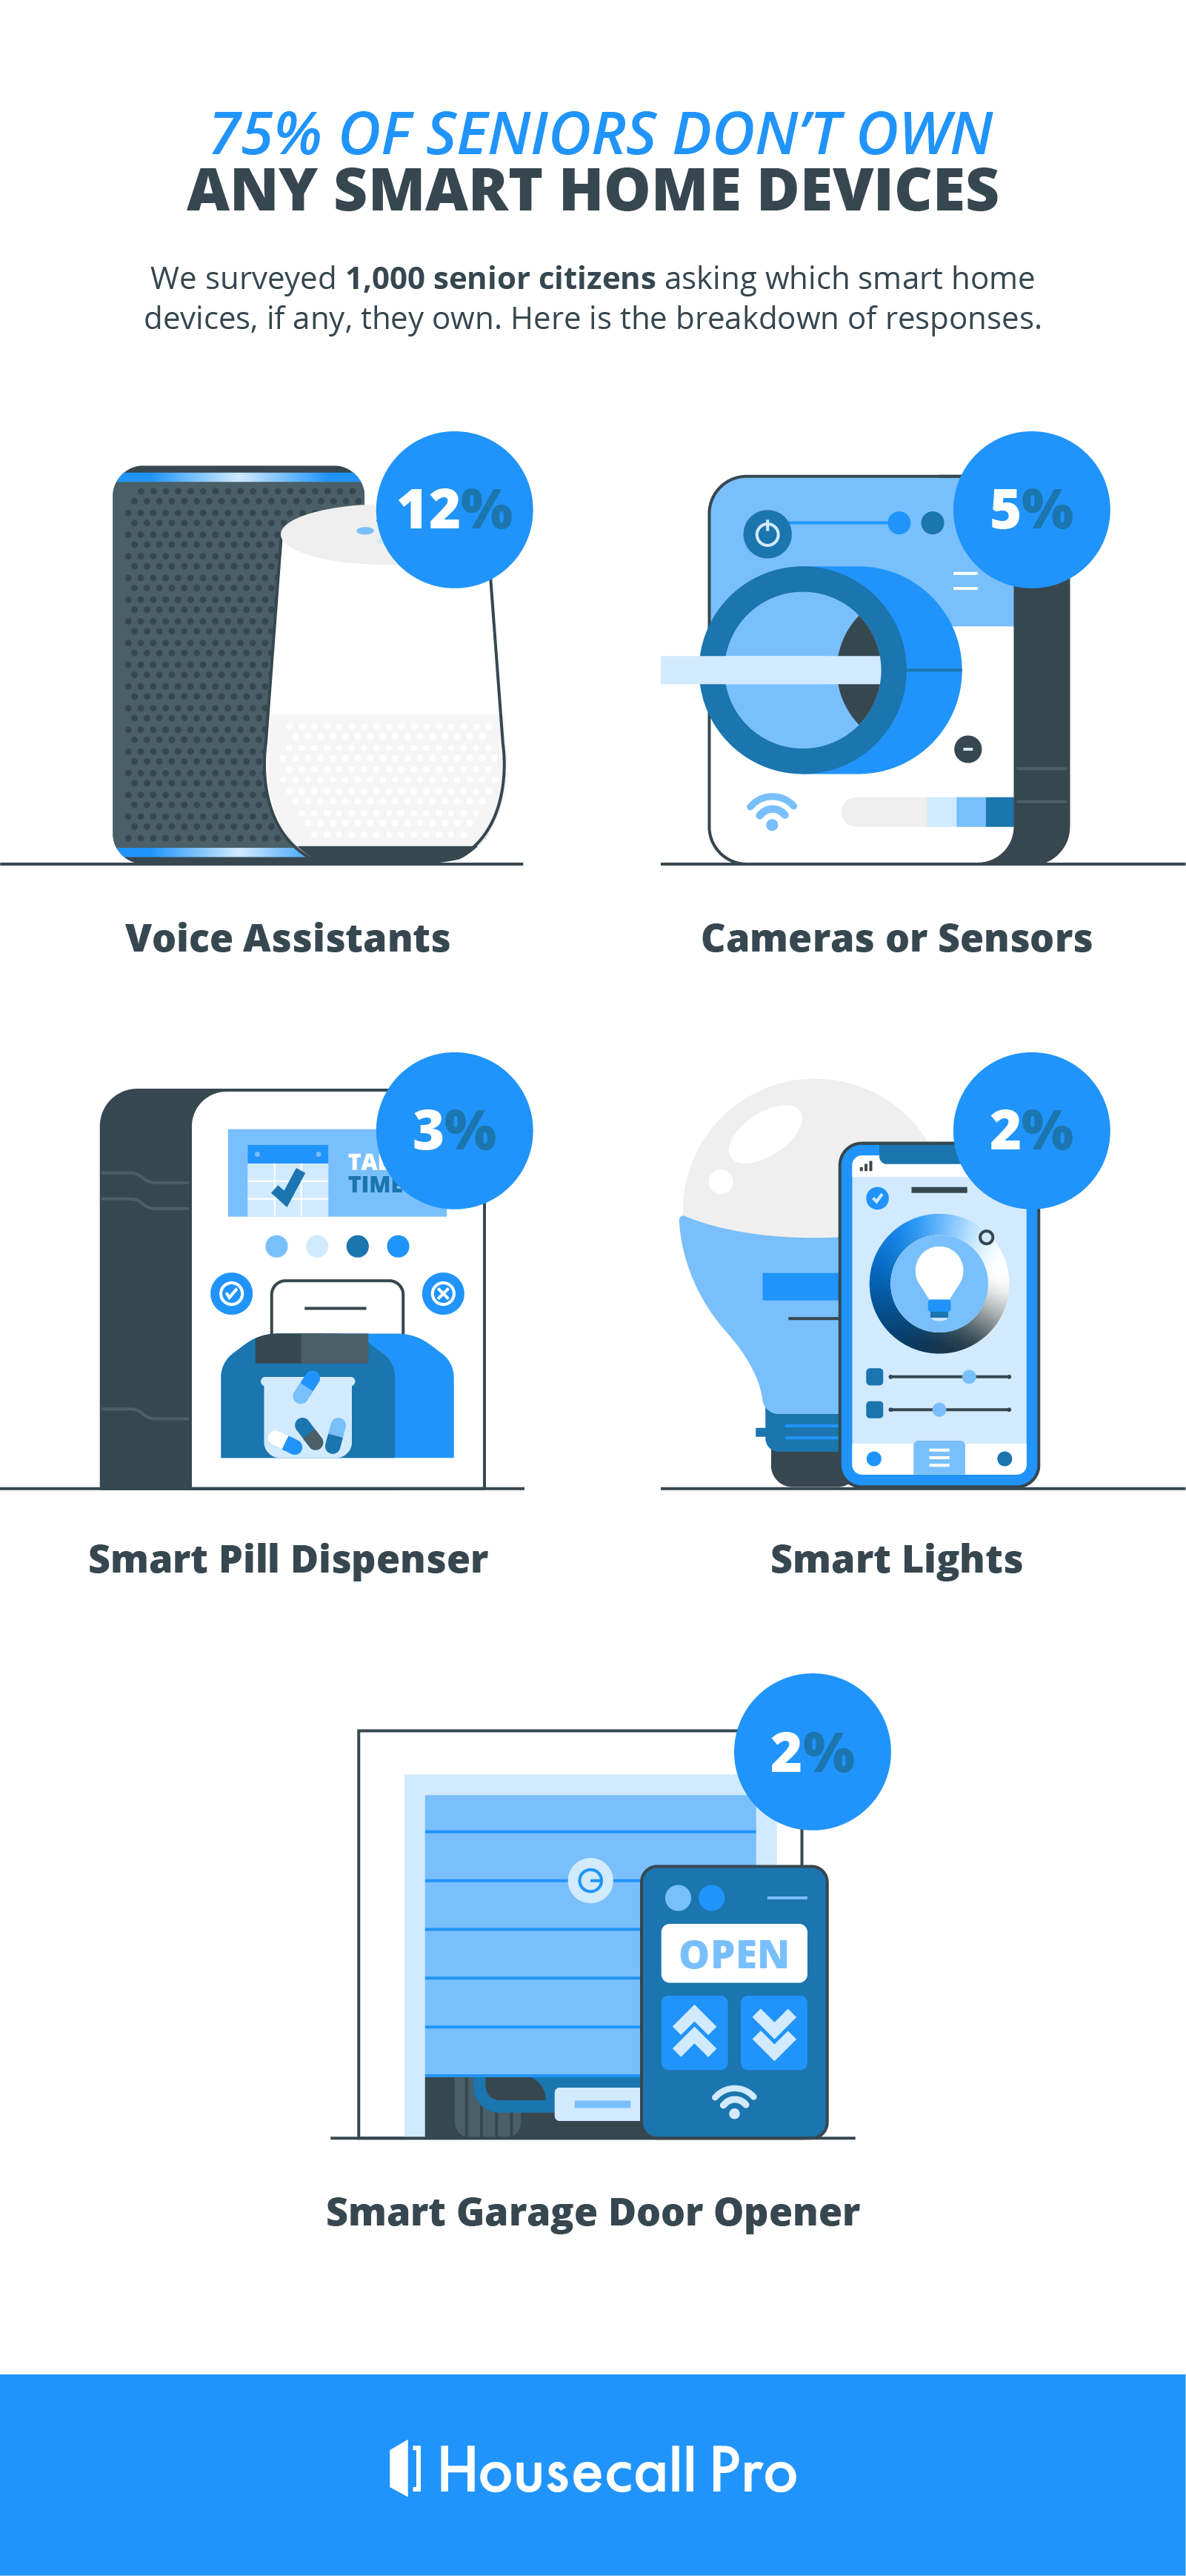 survey results from senior citizens asking what smart home devices they own if any. 76% reported not owning any smart home devices.